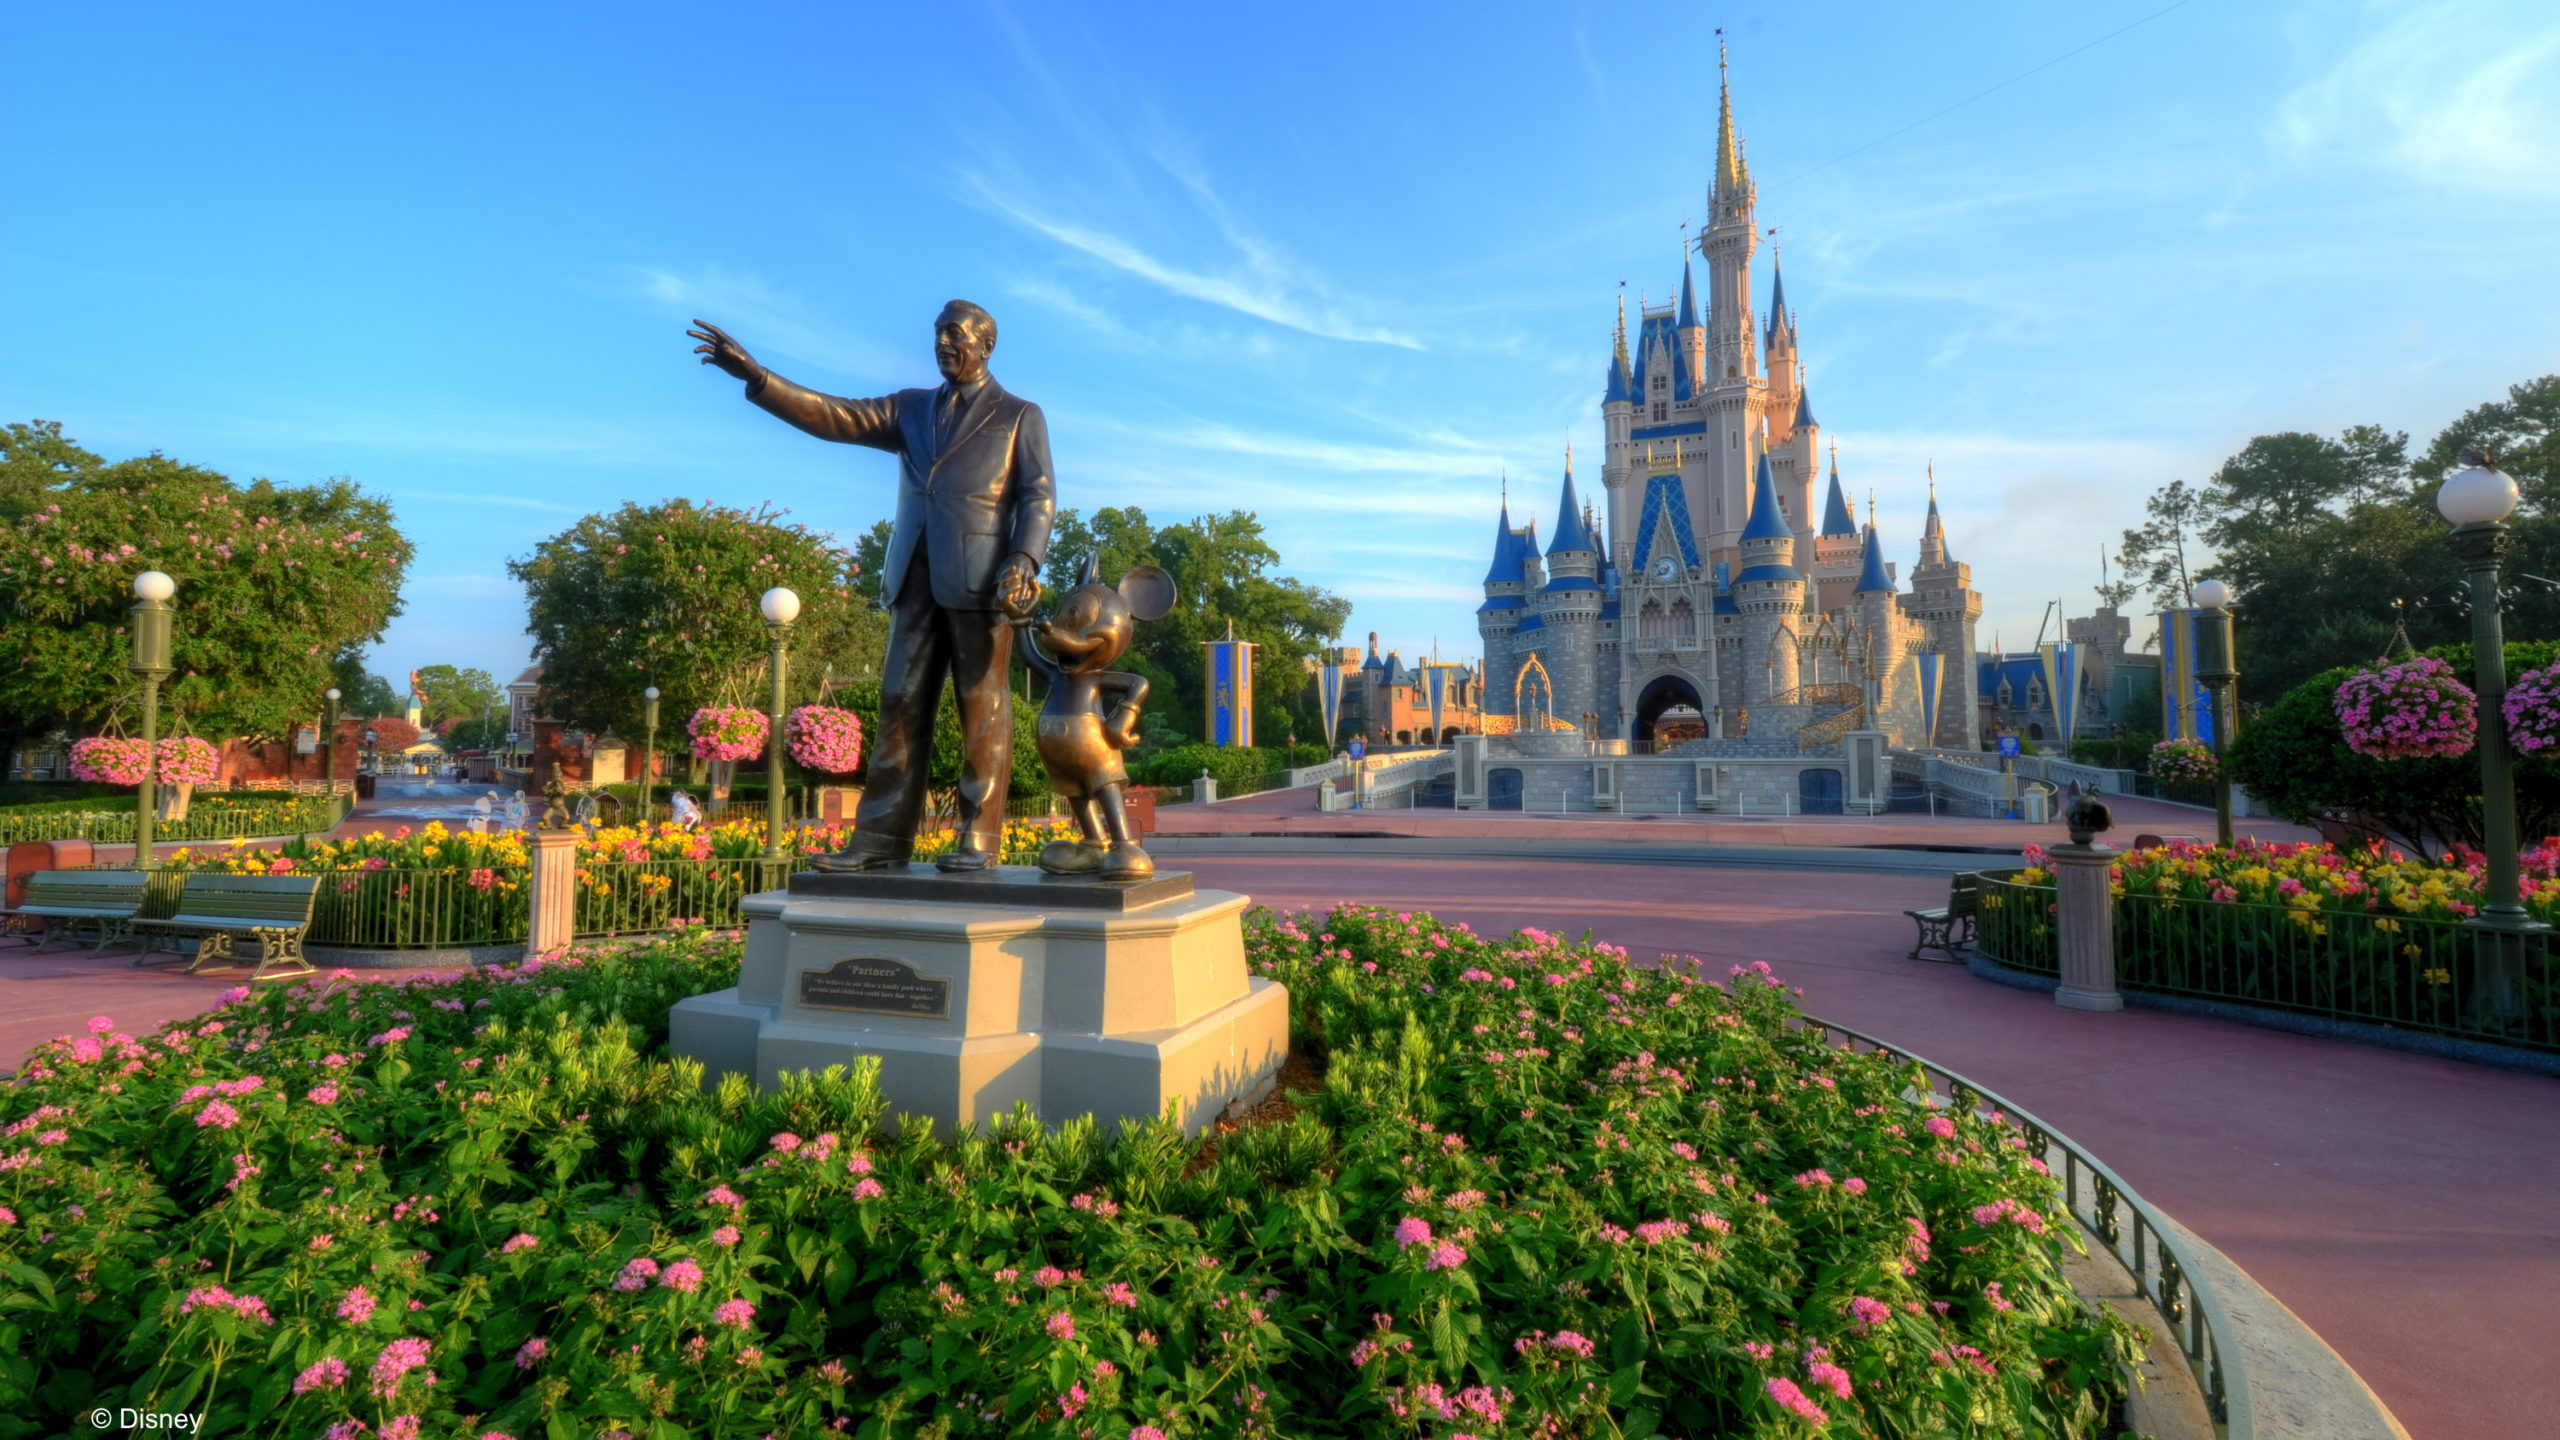 Walt Disney World's Magic Kingdom with Partners Statue and Cinderella Castle